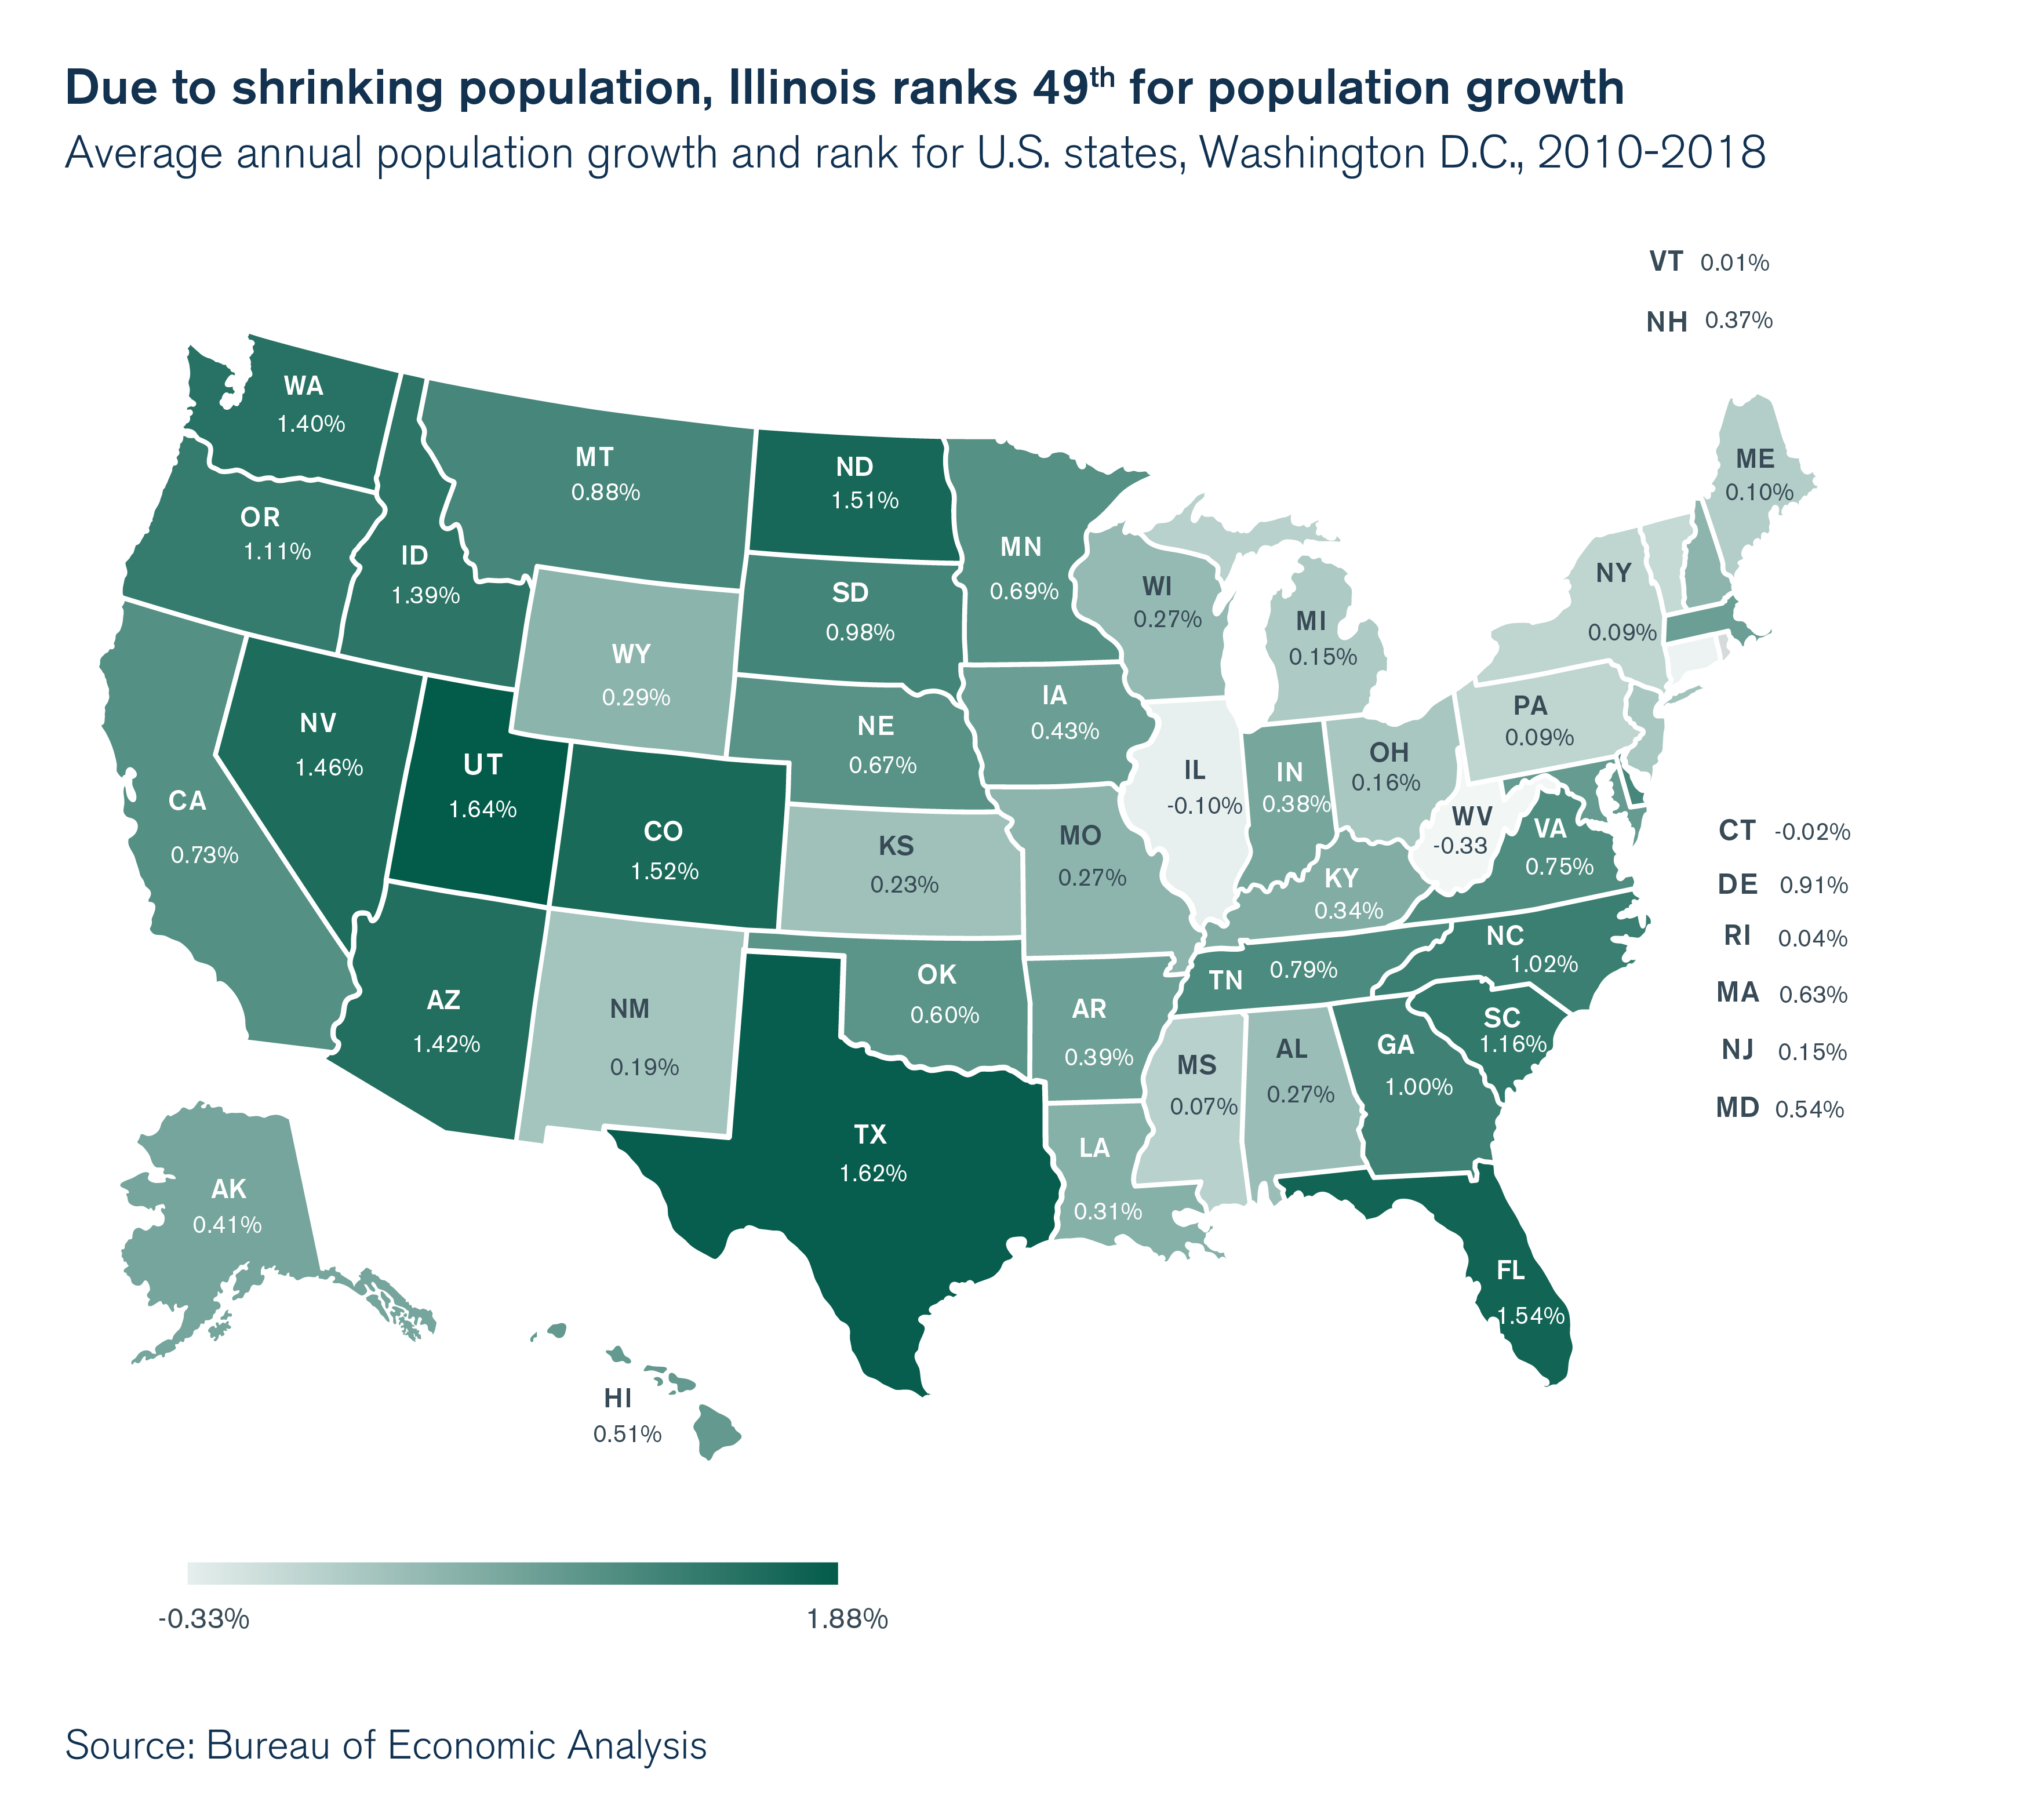 Due to shrinking population, Illinois ranks 49th for population growth